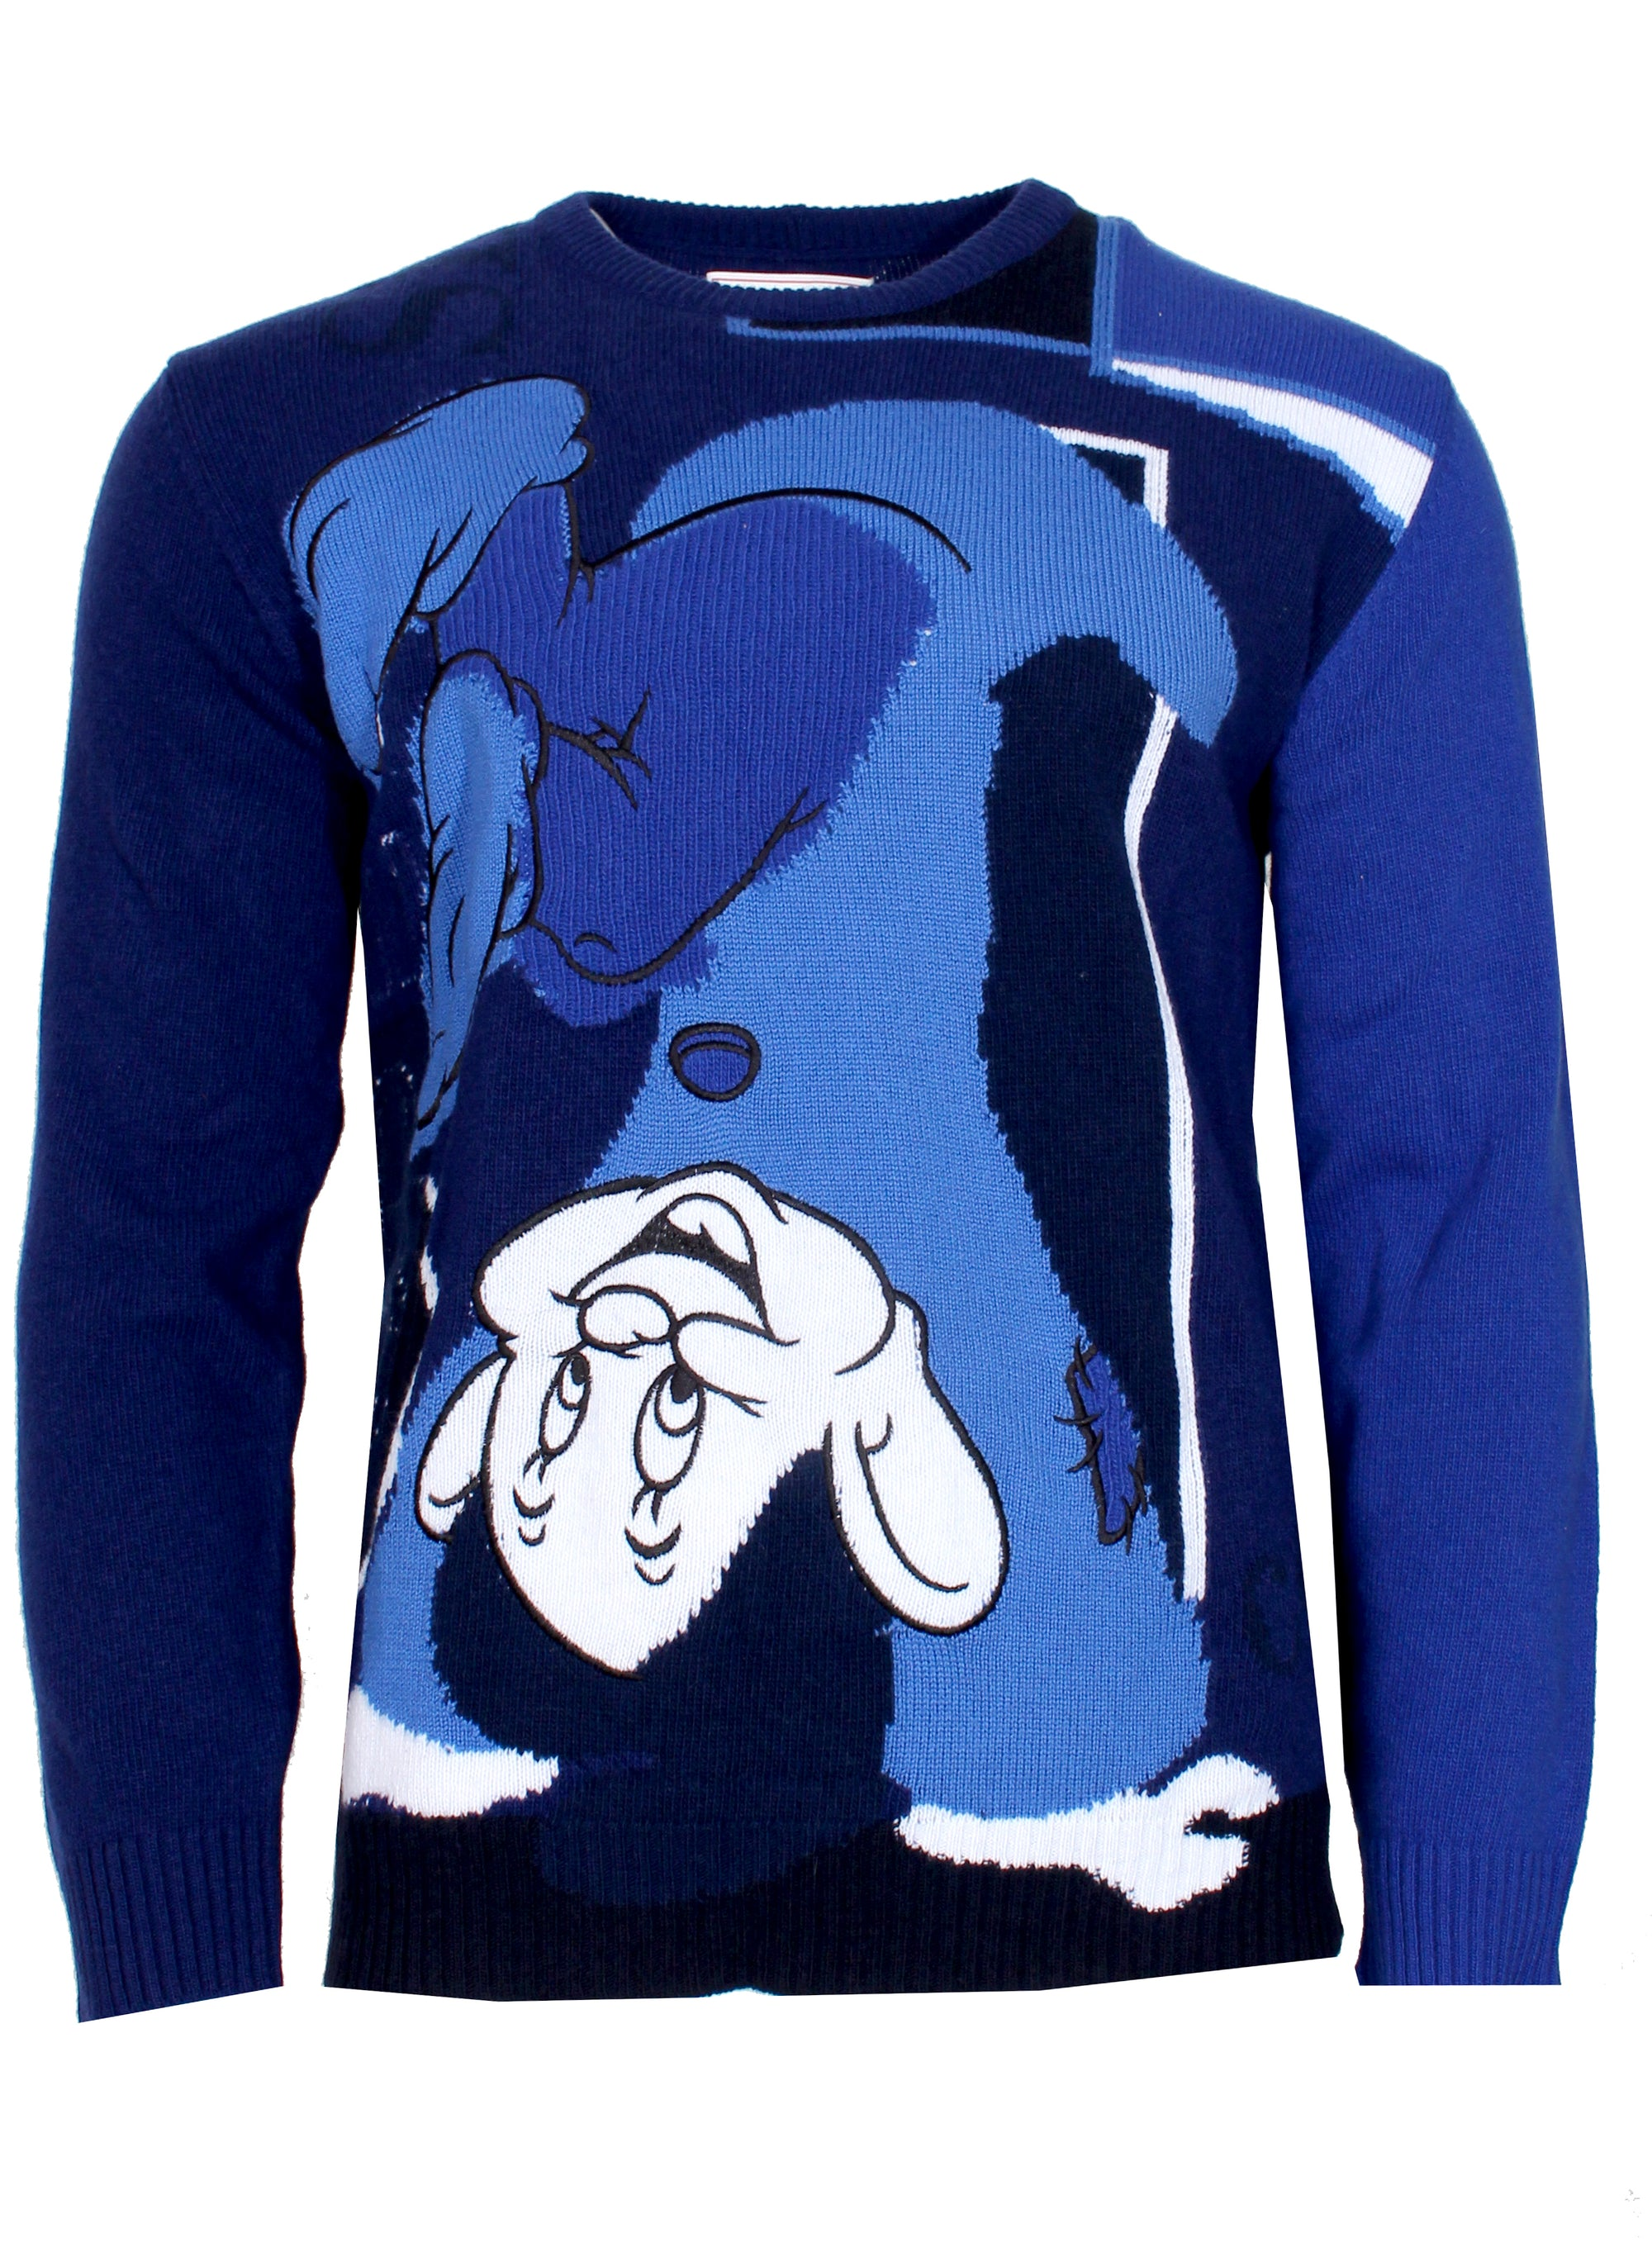 Men's Wool Iceberg Sweater with Disney Dopey Dwarf-Blue